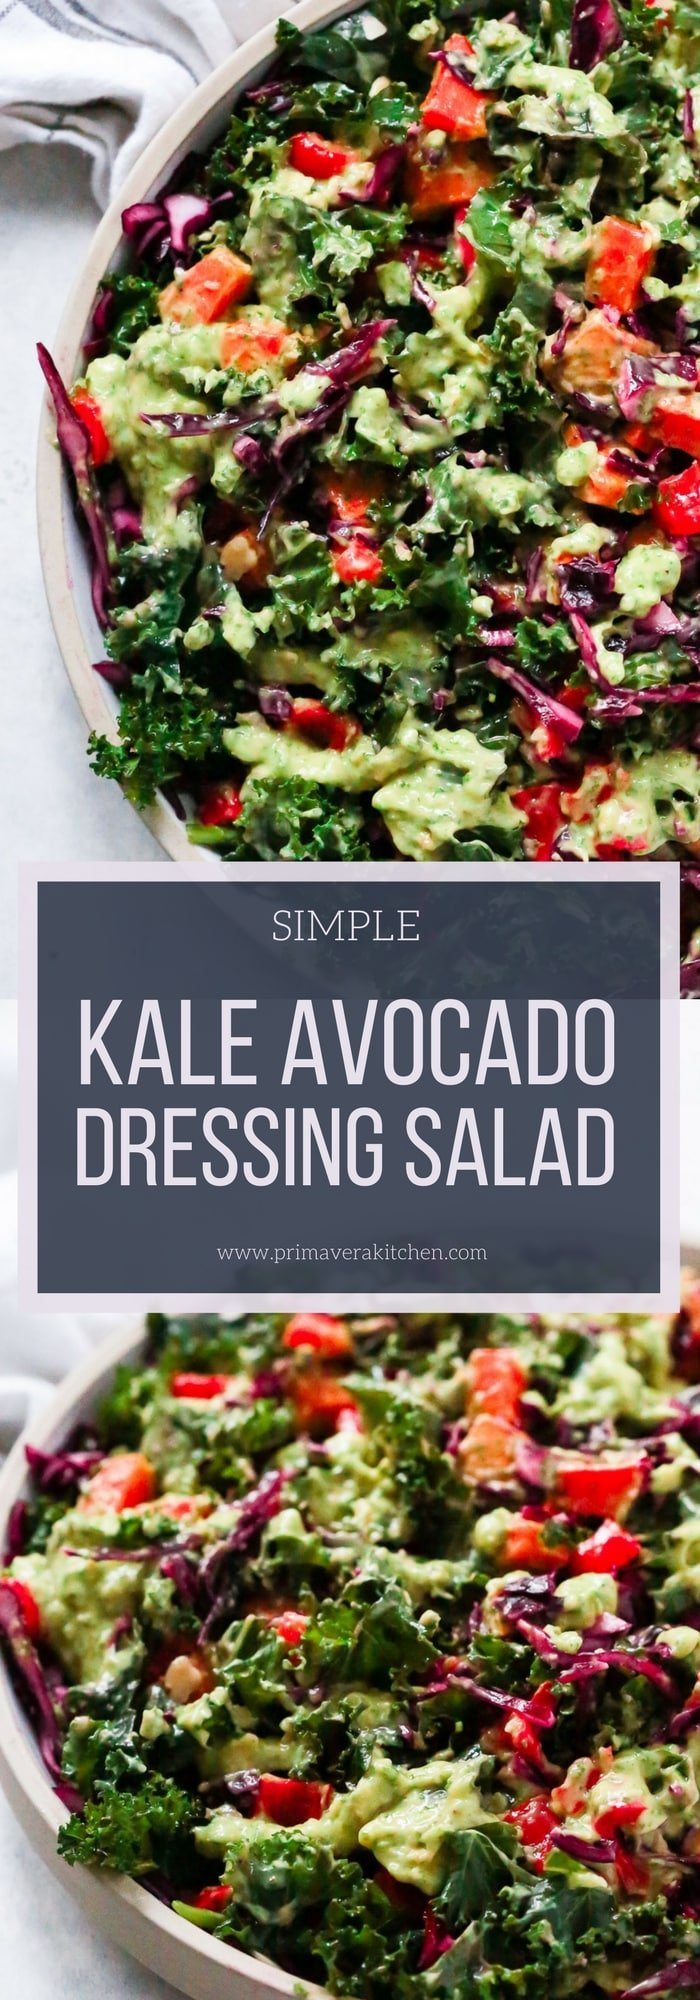 Simple Kale Salad with Avocado Dressing - Simple Kale Salad with Avocado Dressing, which is so delicious, and it's done in 5 minutes by pulsing the dressing ingredients in a food processor. Easy, healthy, gluten-free, low-carb and paleo friendly!